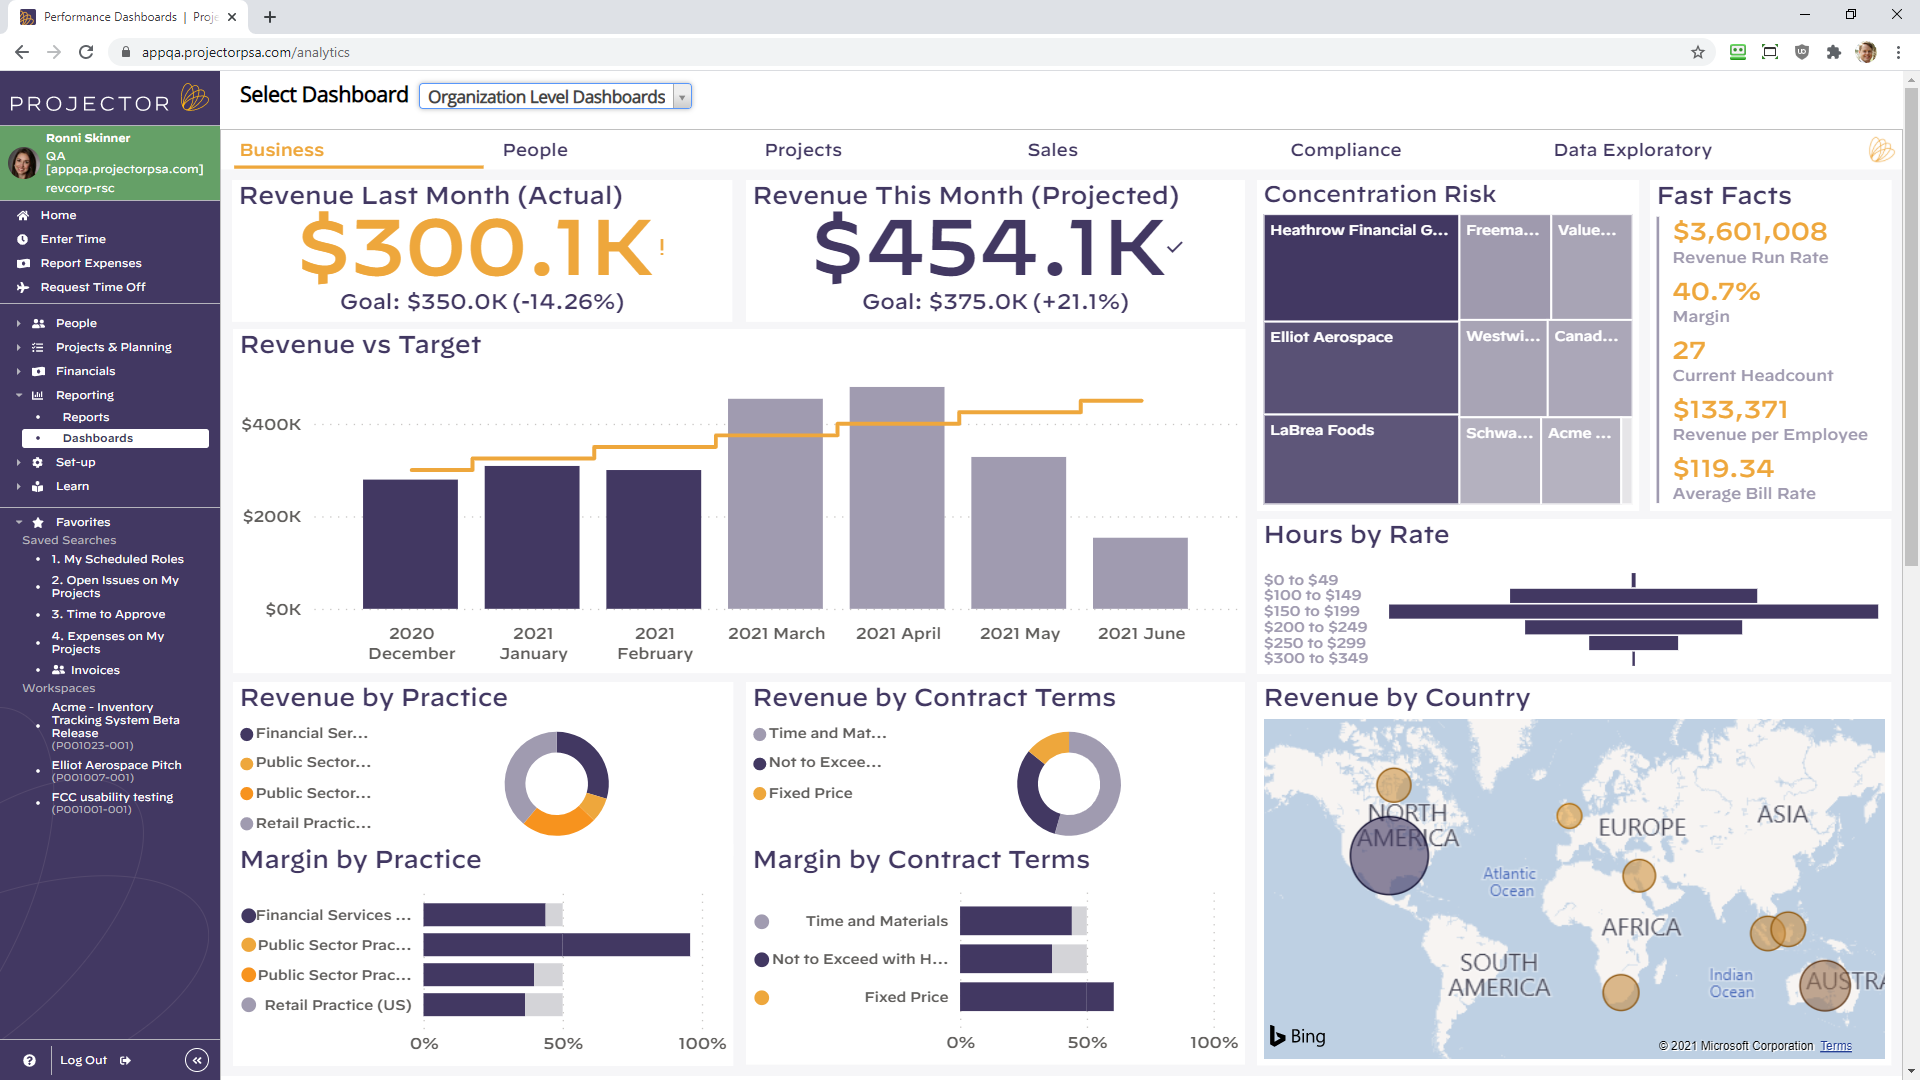 Measure standard KPIs including: profitability, pipeline and project revenue or customize for your PSO